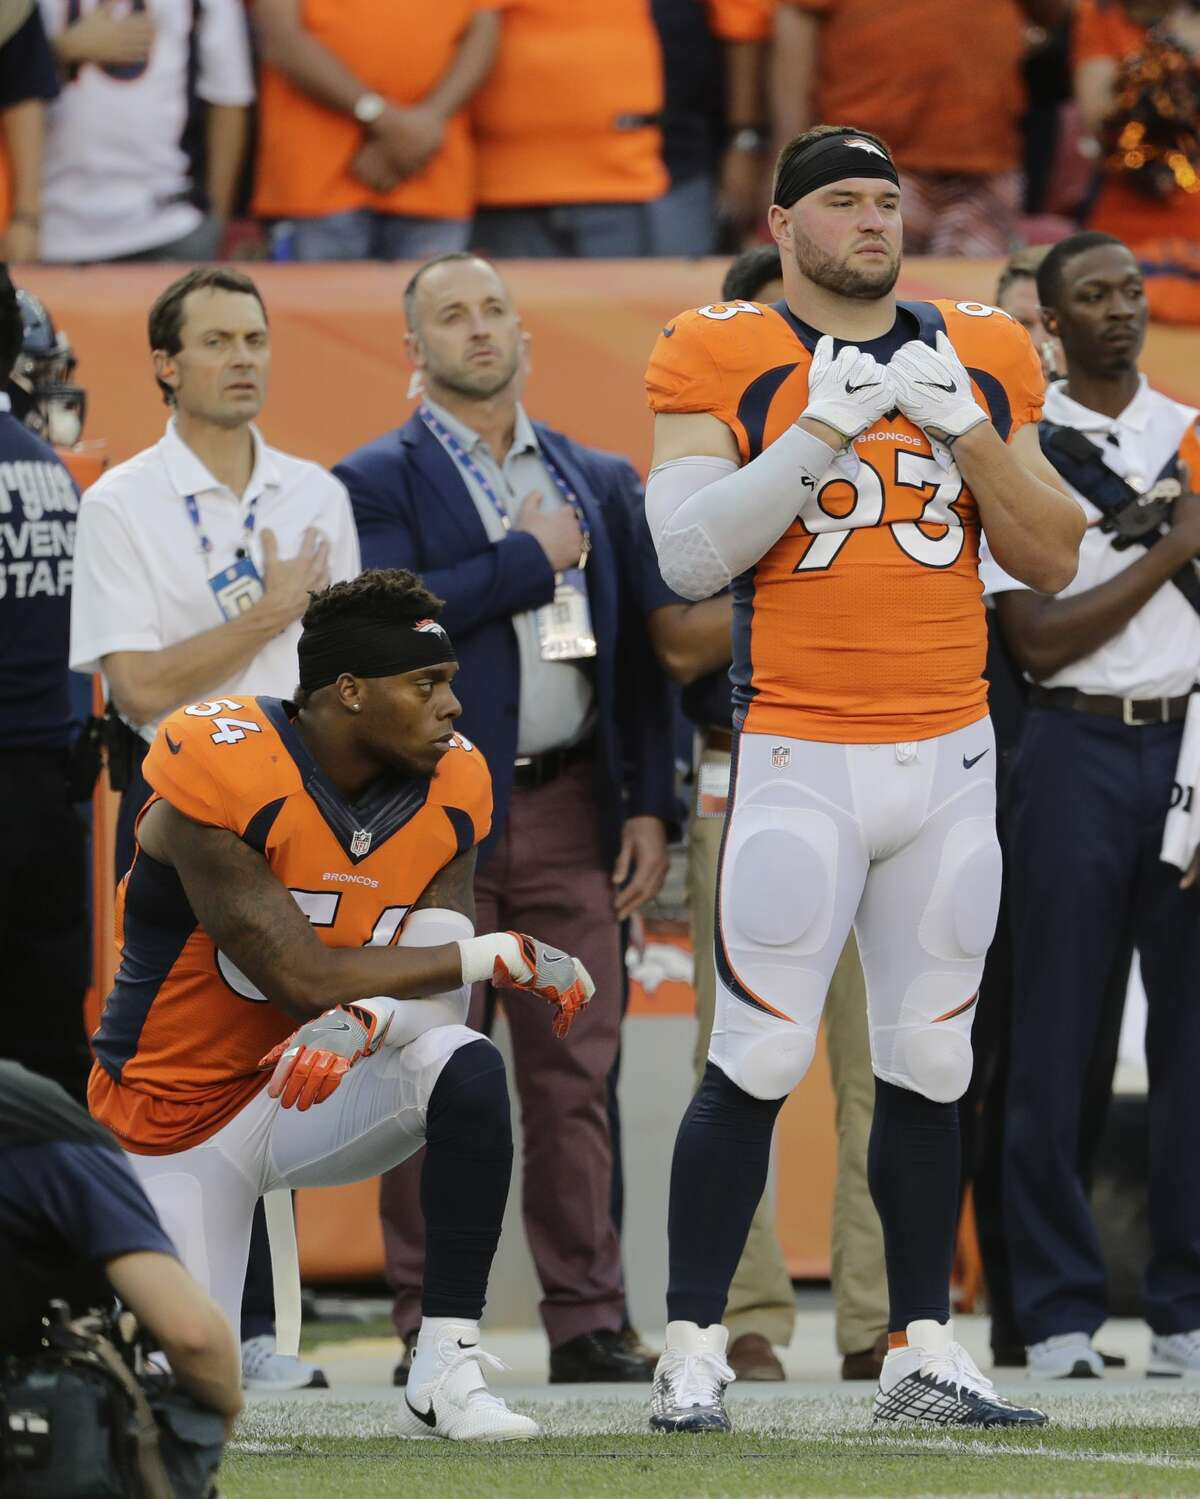 FILE - In this Thursday, Sept. 8, 2016, file photo, Denver Broncos inside linebacker Brandon Marshall (54) kneels on the sideline during the national anthem before an NFL football game against the Carolina Panthers in Denver. The dozen NFL players who have joined Kaepernick?'s protest of social injustices by kneeling or raising a fist during the national anthem have faced vitriolic, sometimes racist reactions on social media and at least one has lost endorsements. None are deterred by the backlash. (AP Photo/Joe Mahoney, File)